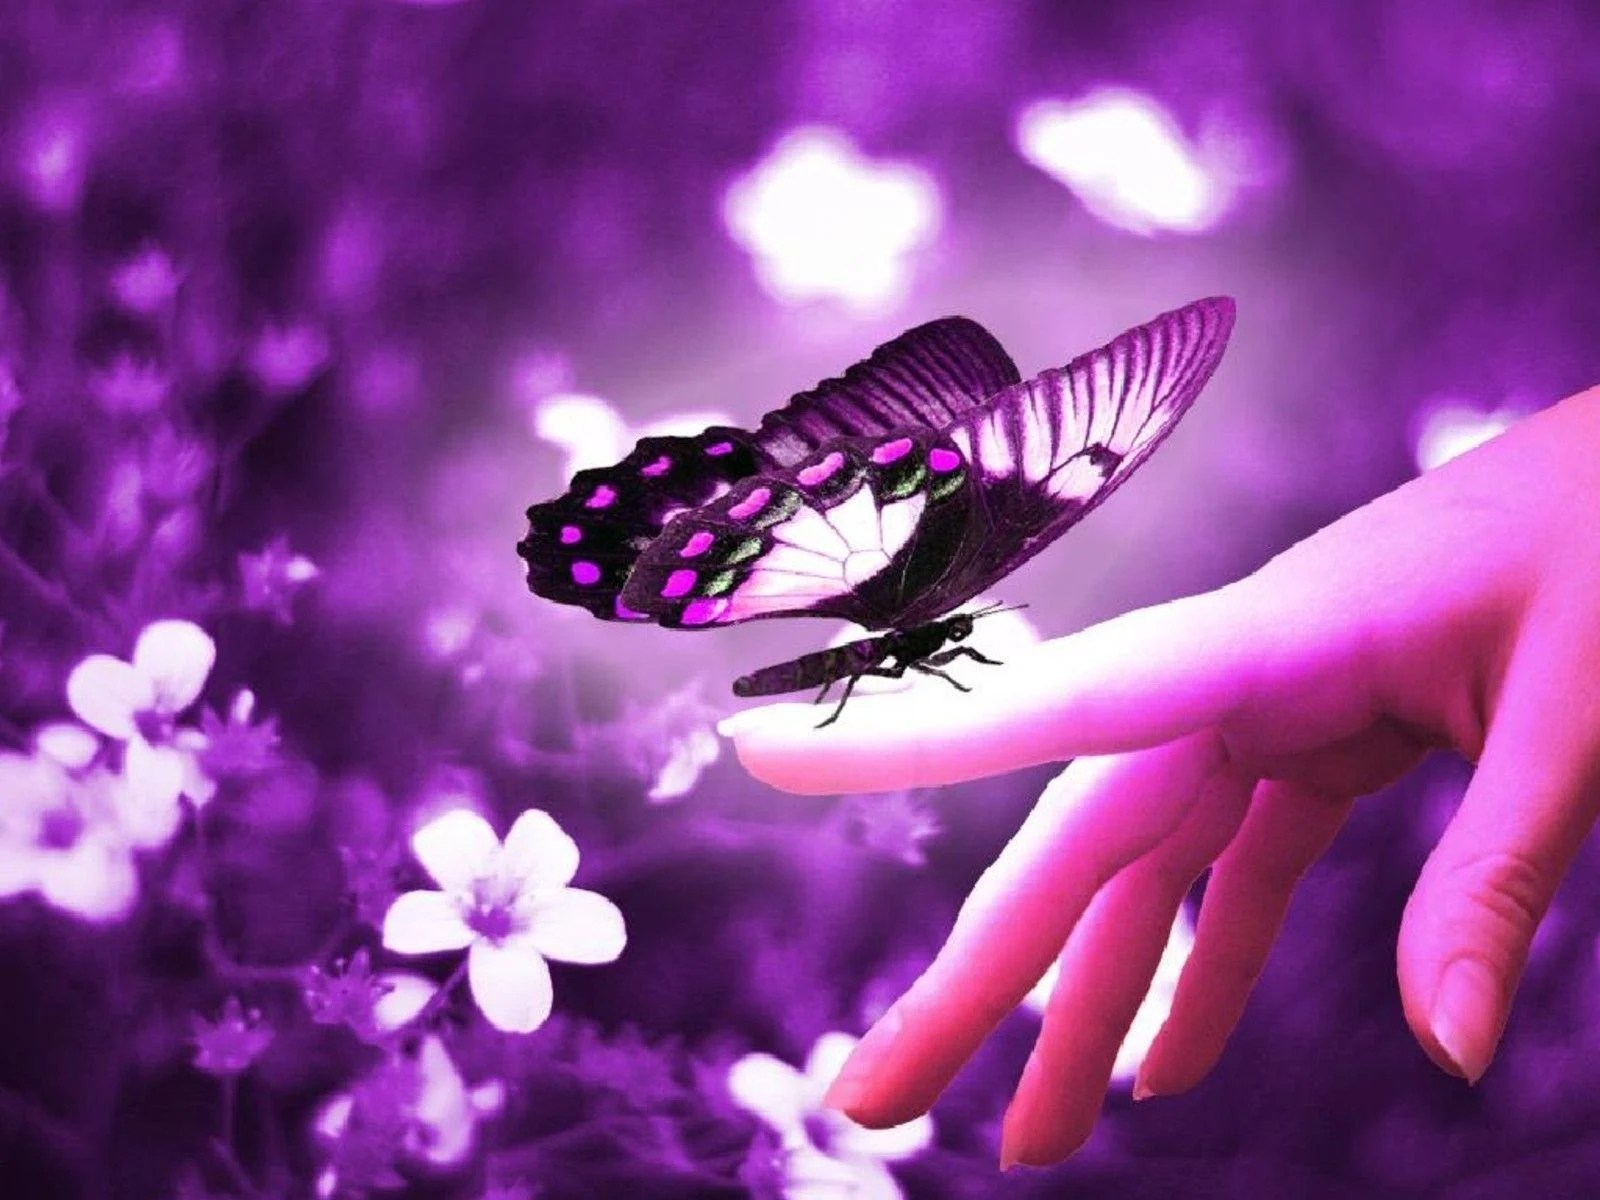 Beautiful Butterfly Wallpapers   Wallpaper Cave Beautiful Butterflies   Butterflies Wallpaper  9481170    Fanpop